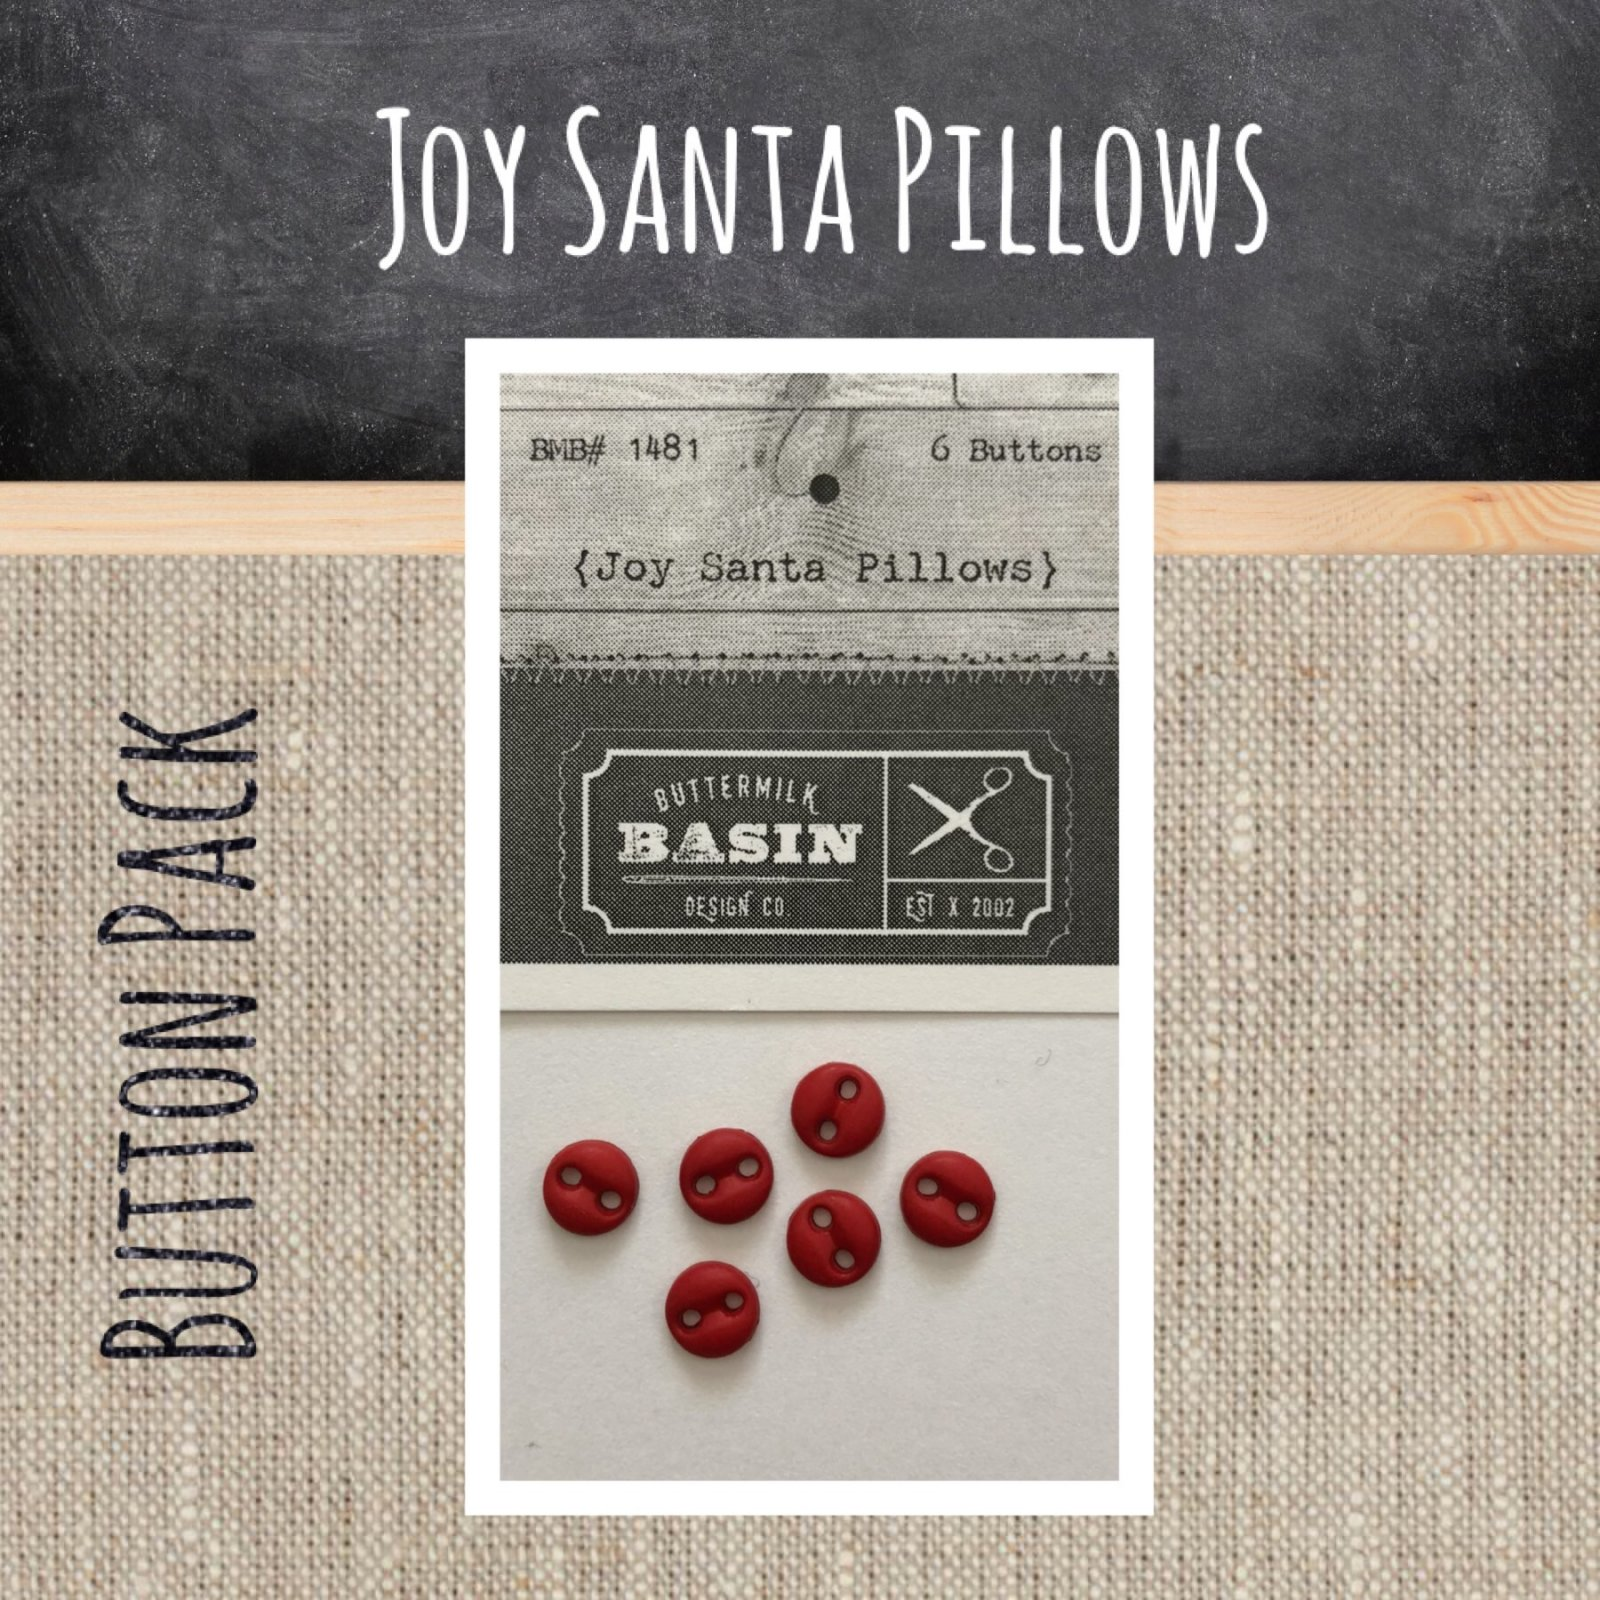 Joy Santa Pillows BUTTON pack